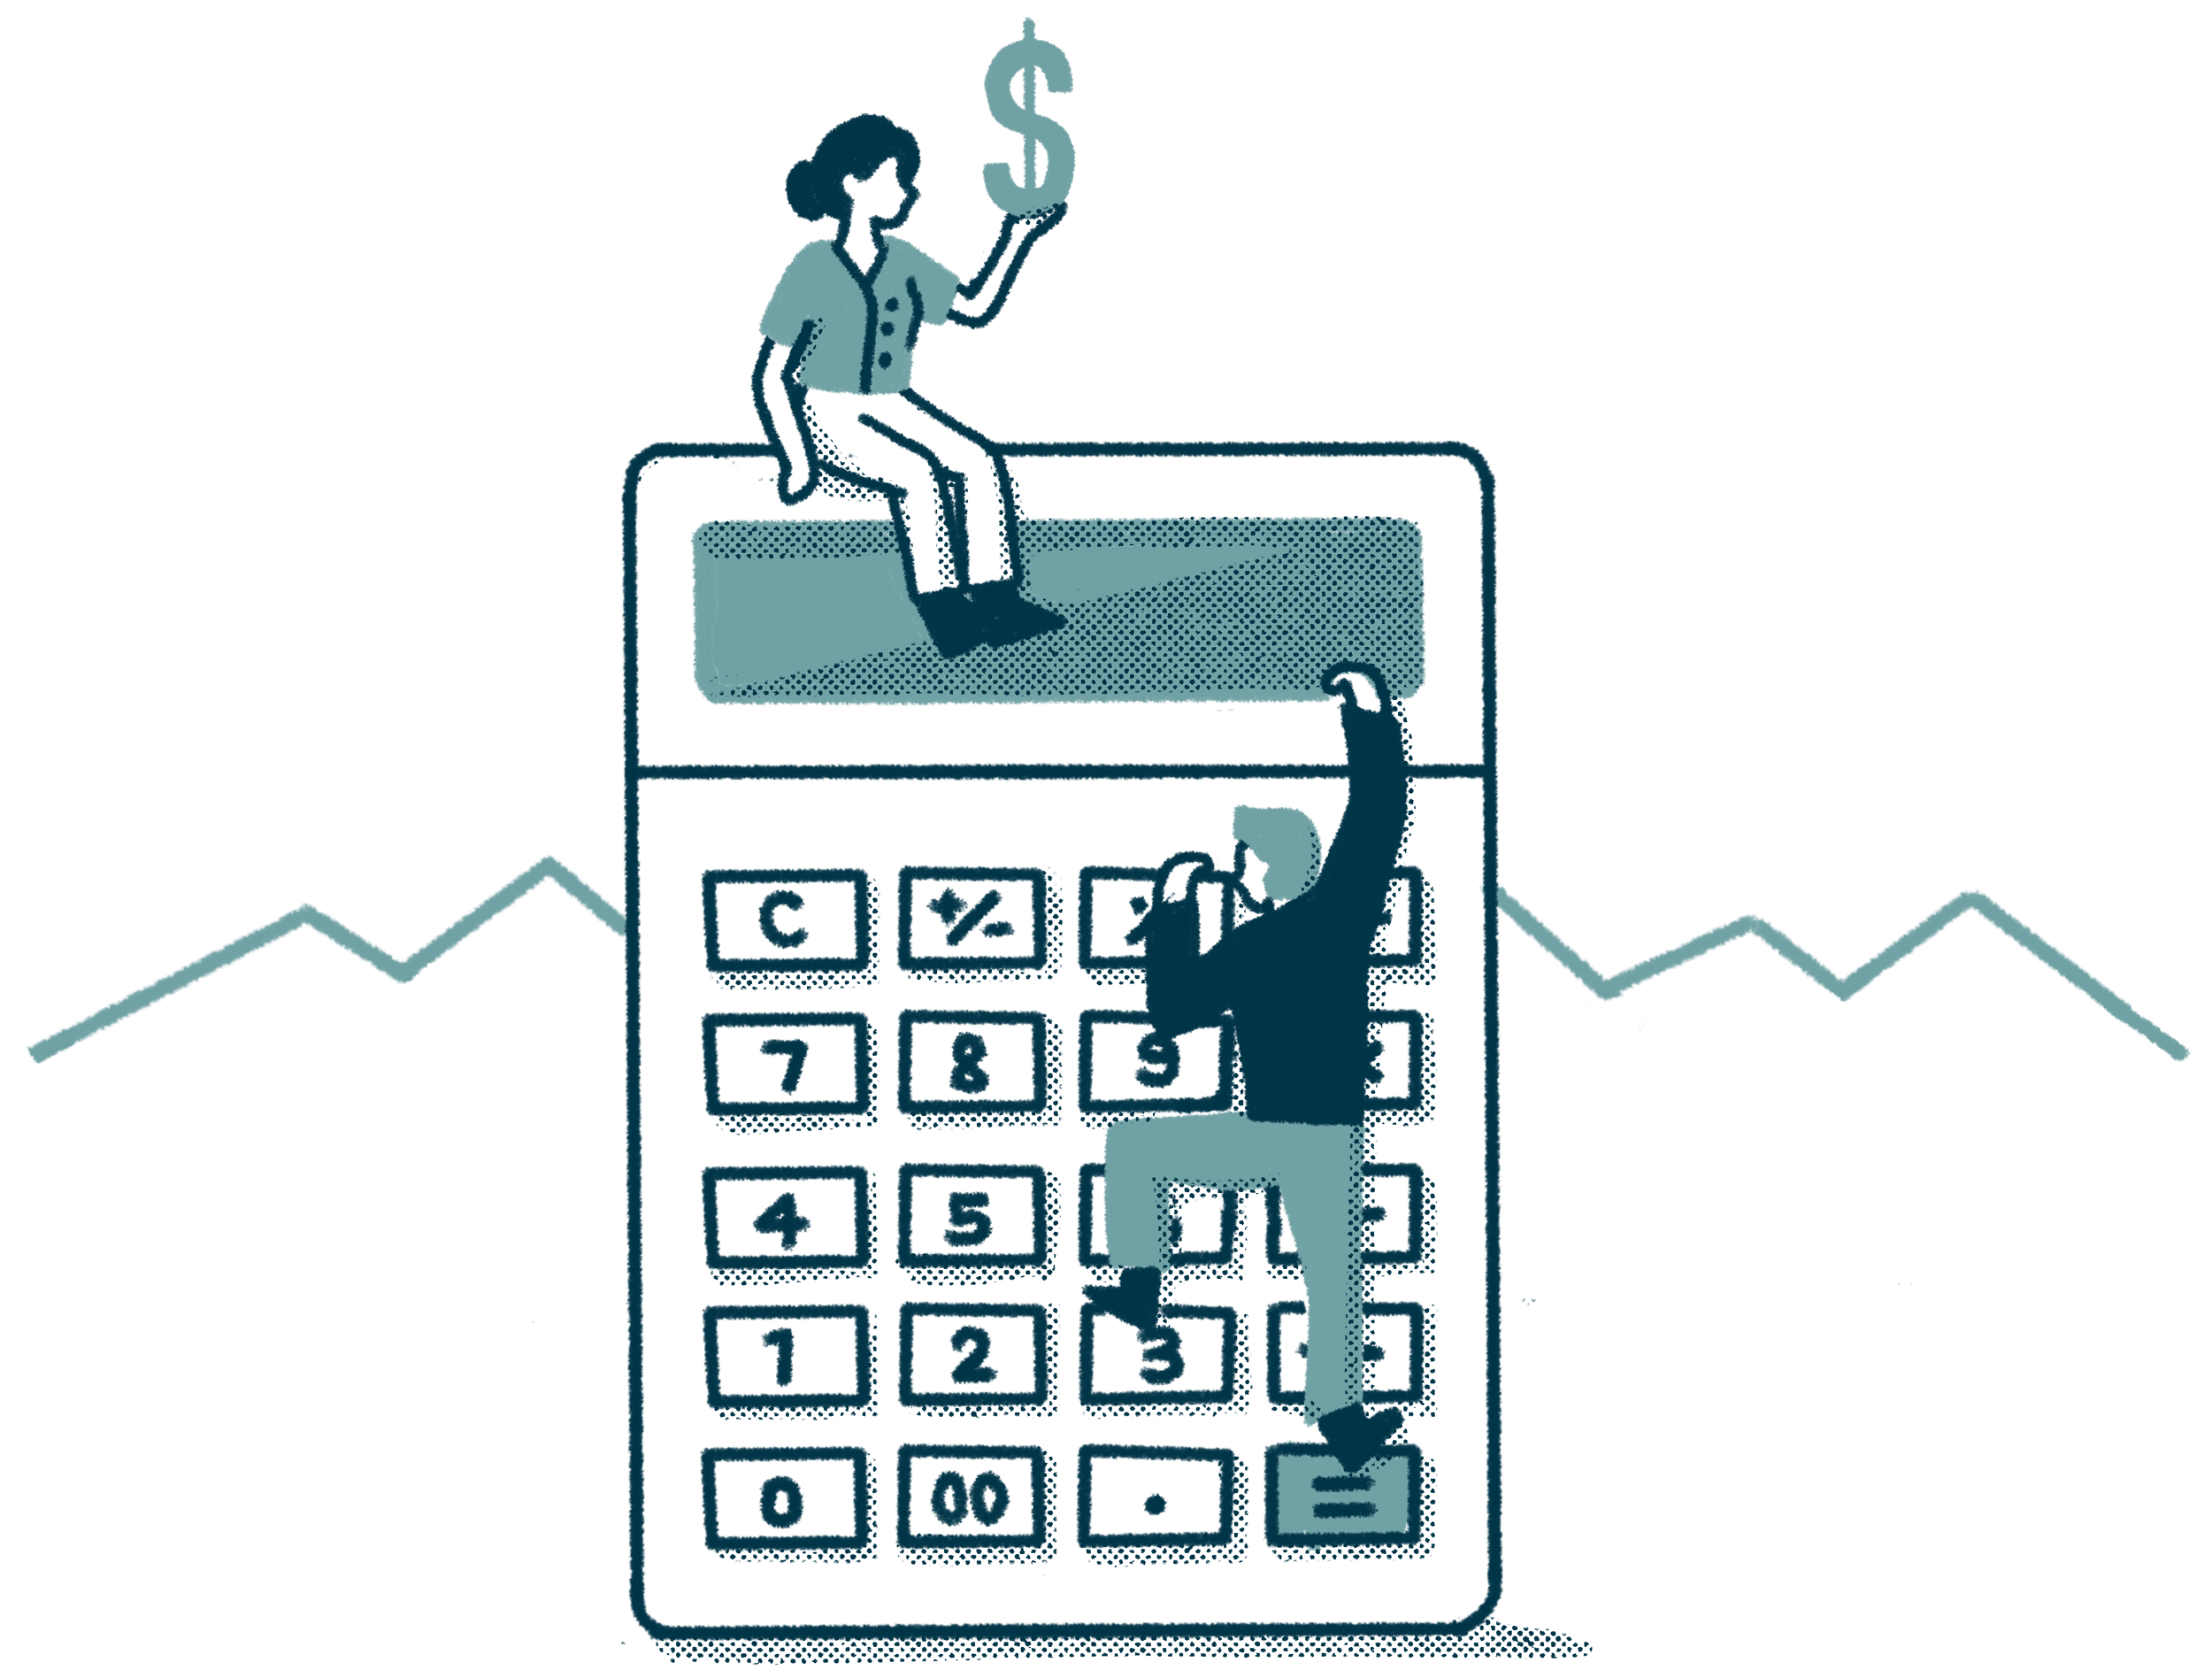 one person climbing up a giant calculator while another person sits on top holding a giant dollar symbol. mountains in the background.